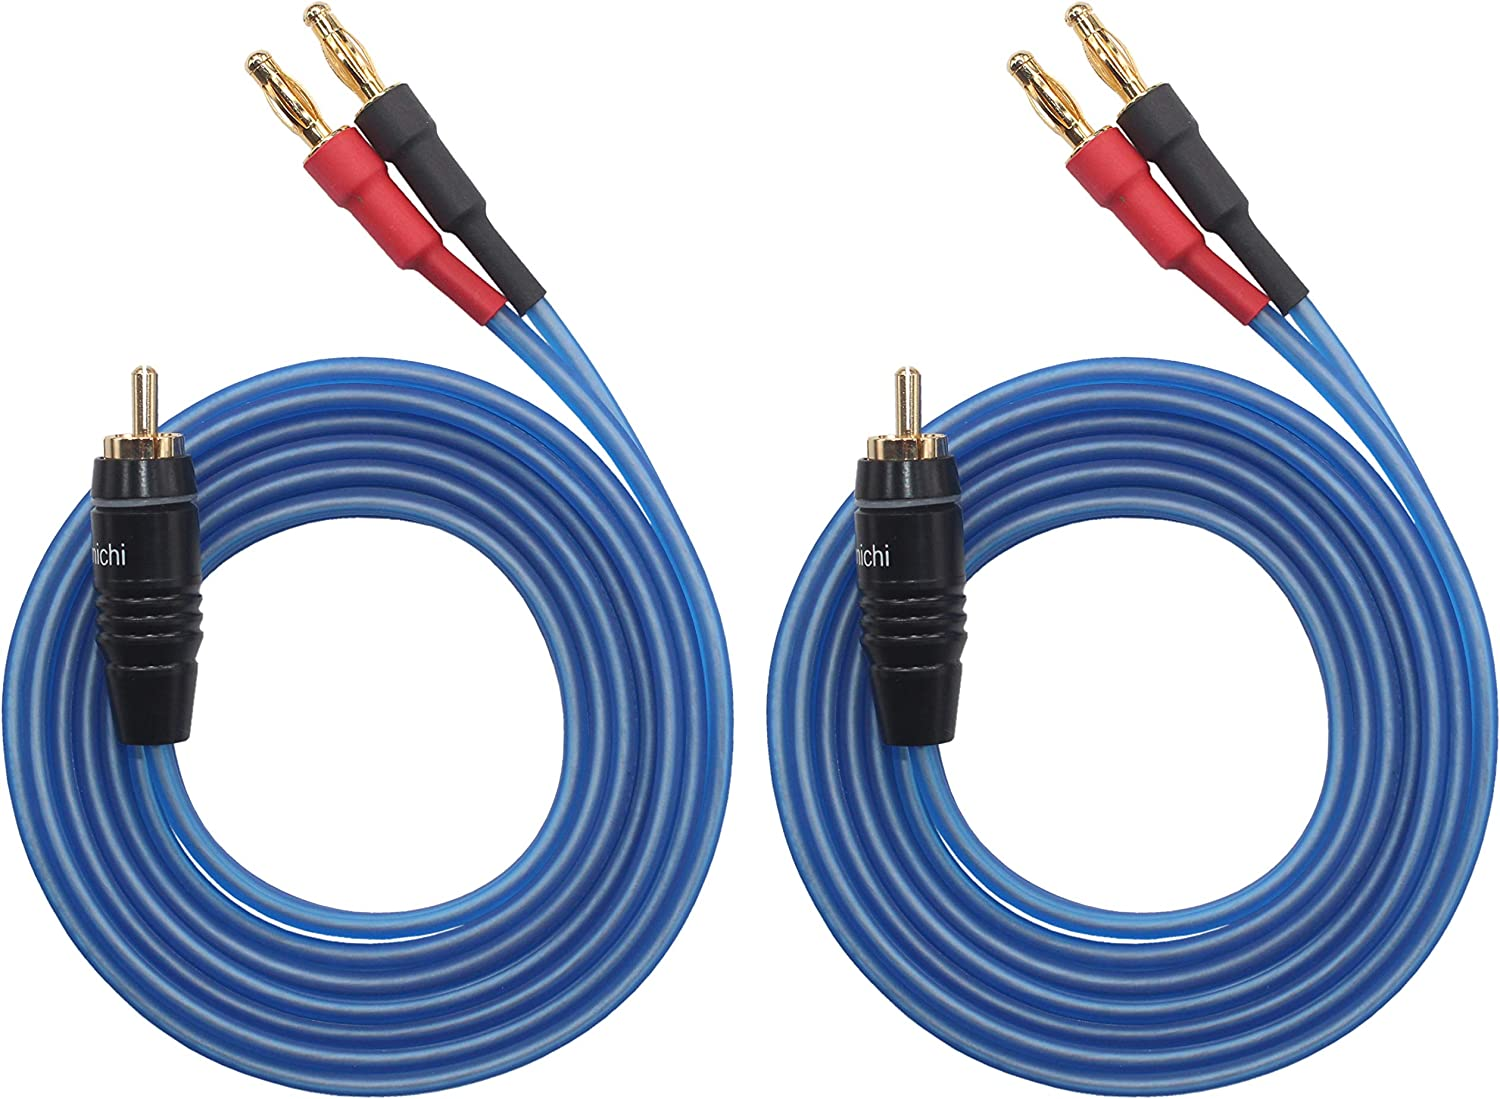 4banana to 2 Pair Banana Q-P2 White /& Red 4.92ft Plugs 1.5M KK Cable Q-P2 18 GAUGE OFC Speaker Wire Pair with RCA Male